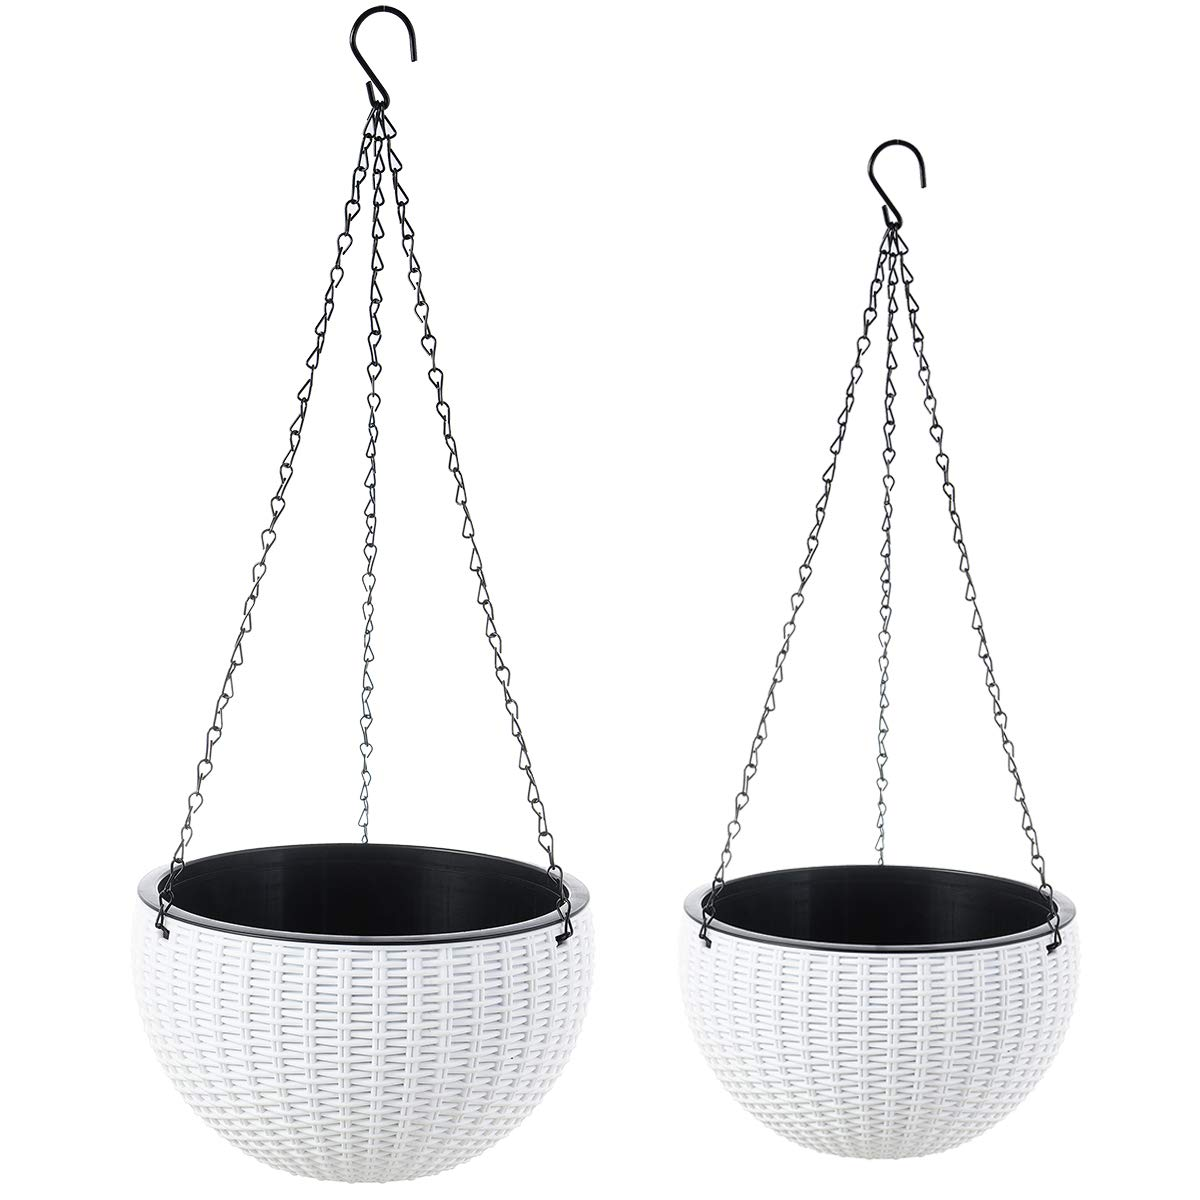 Foraineam 2-Pack Dual-pots Design Hanging Basket Planters Self-Watering Indoor Outdoor Plant Flower Hanging Pots with Drainer and Chain, 2 Size Assorted White